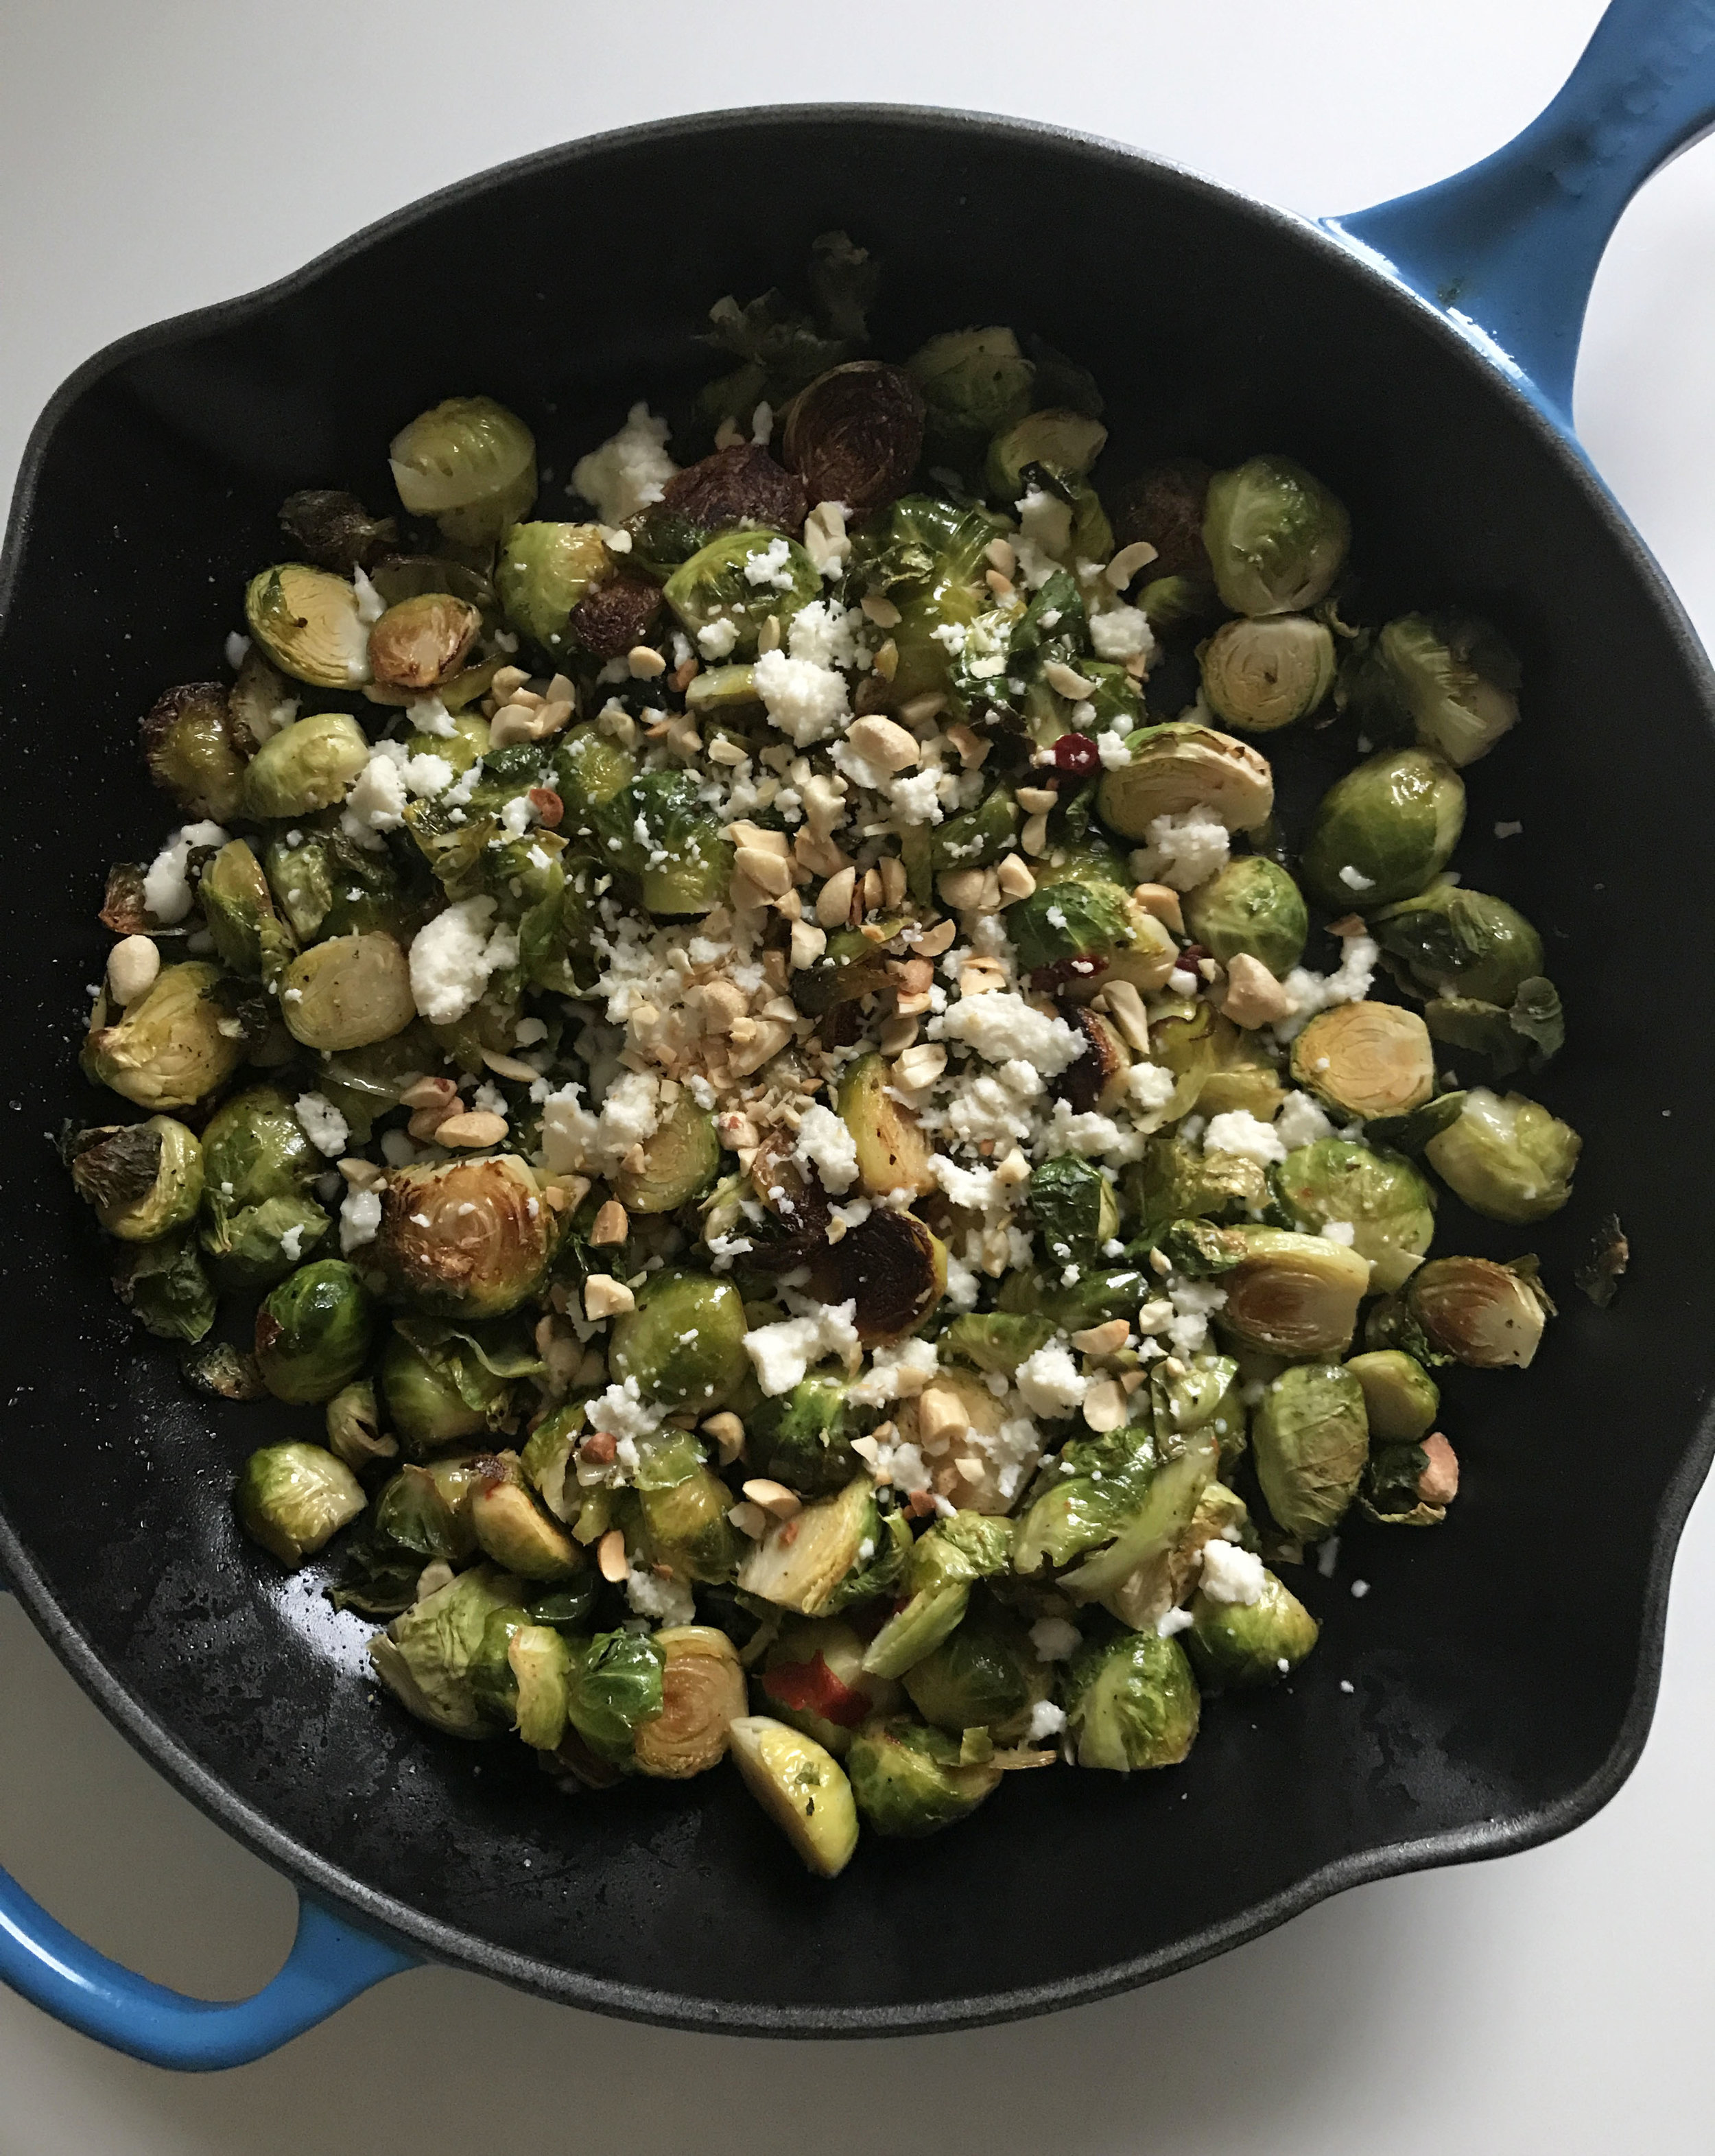 World's Best Brussel Sprouts